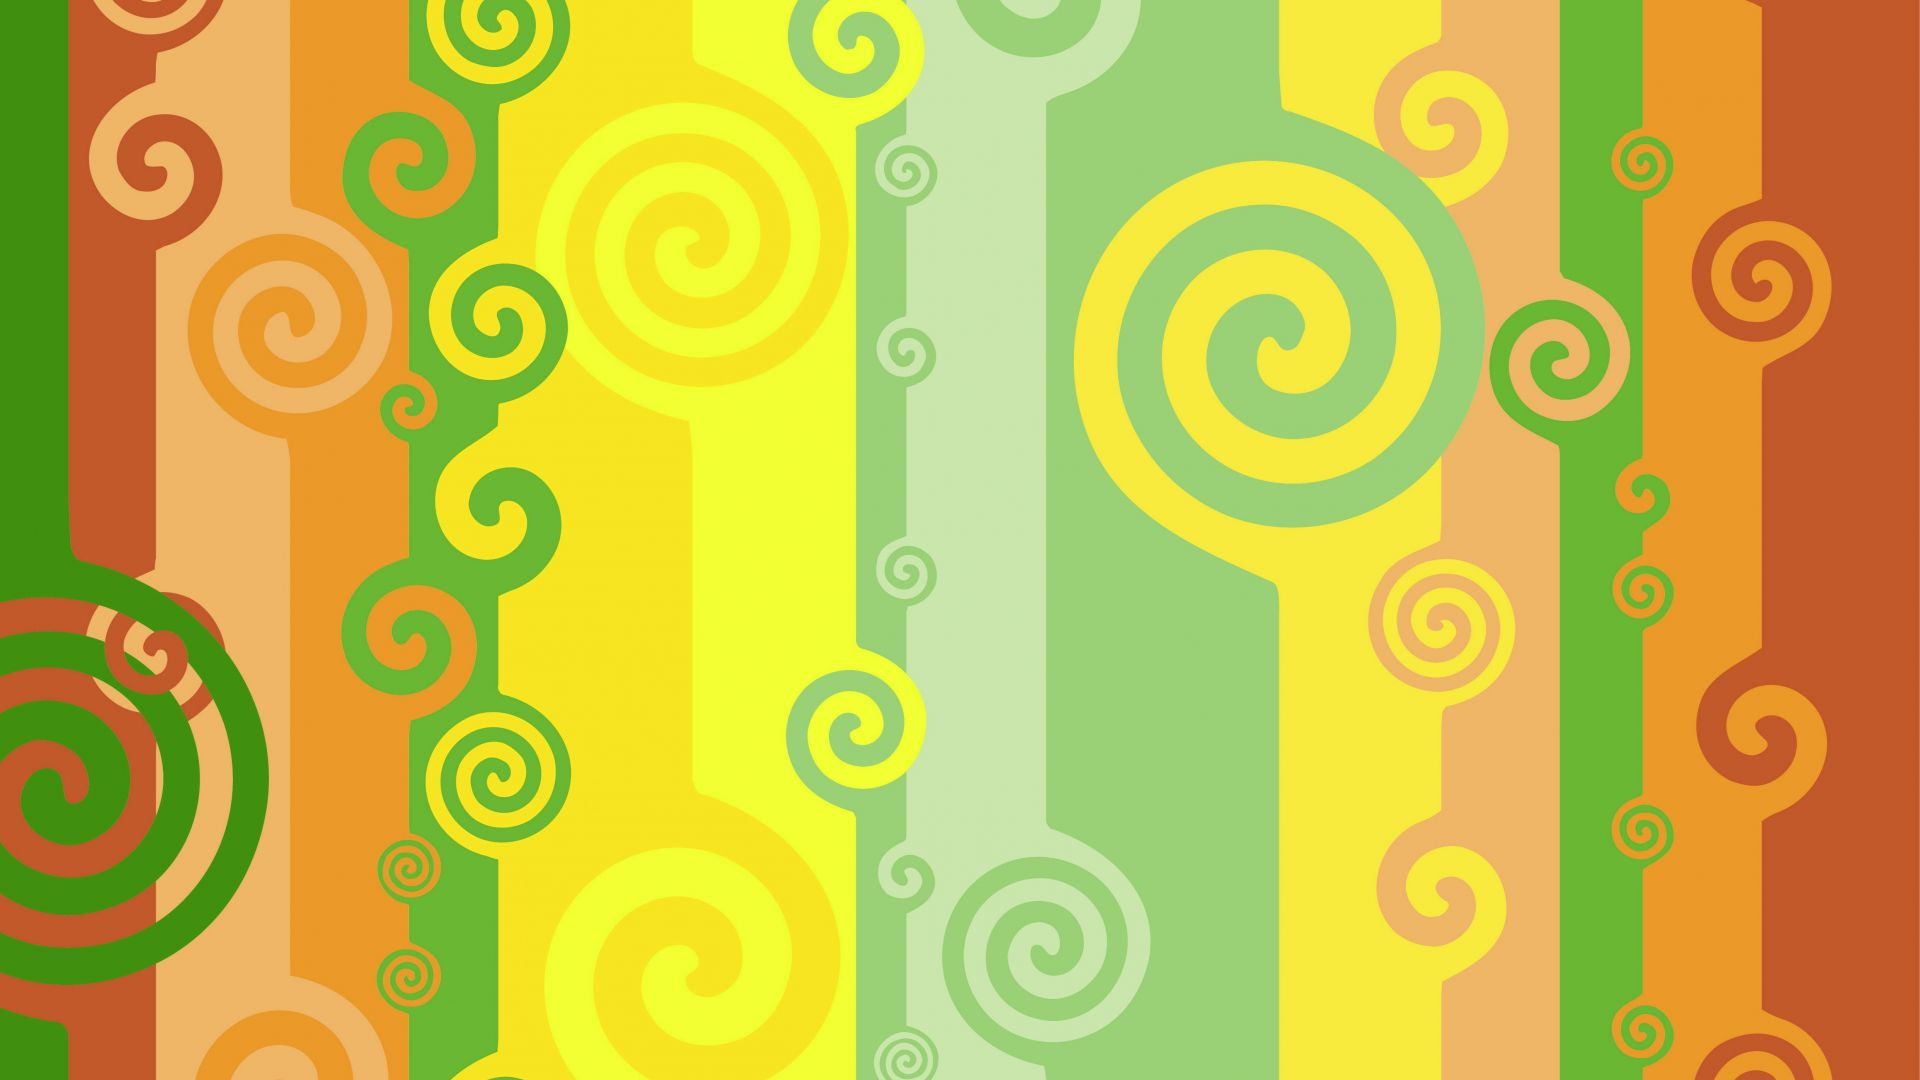 Wallpaper Rings, circles, abstract, colorful design, pattern